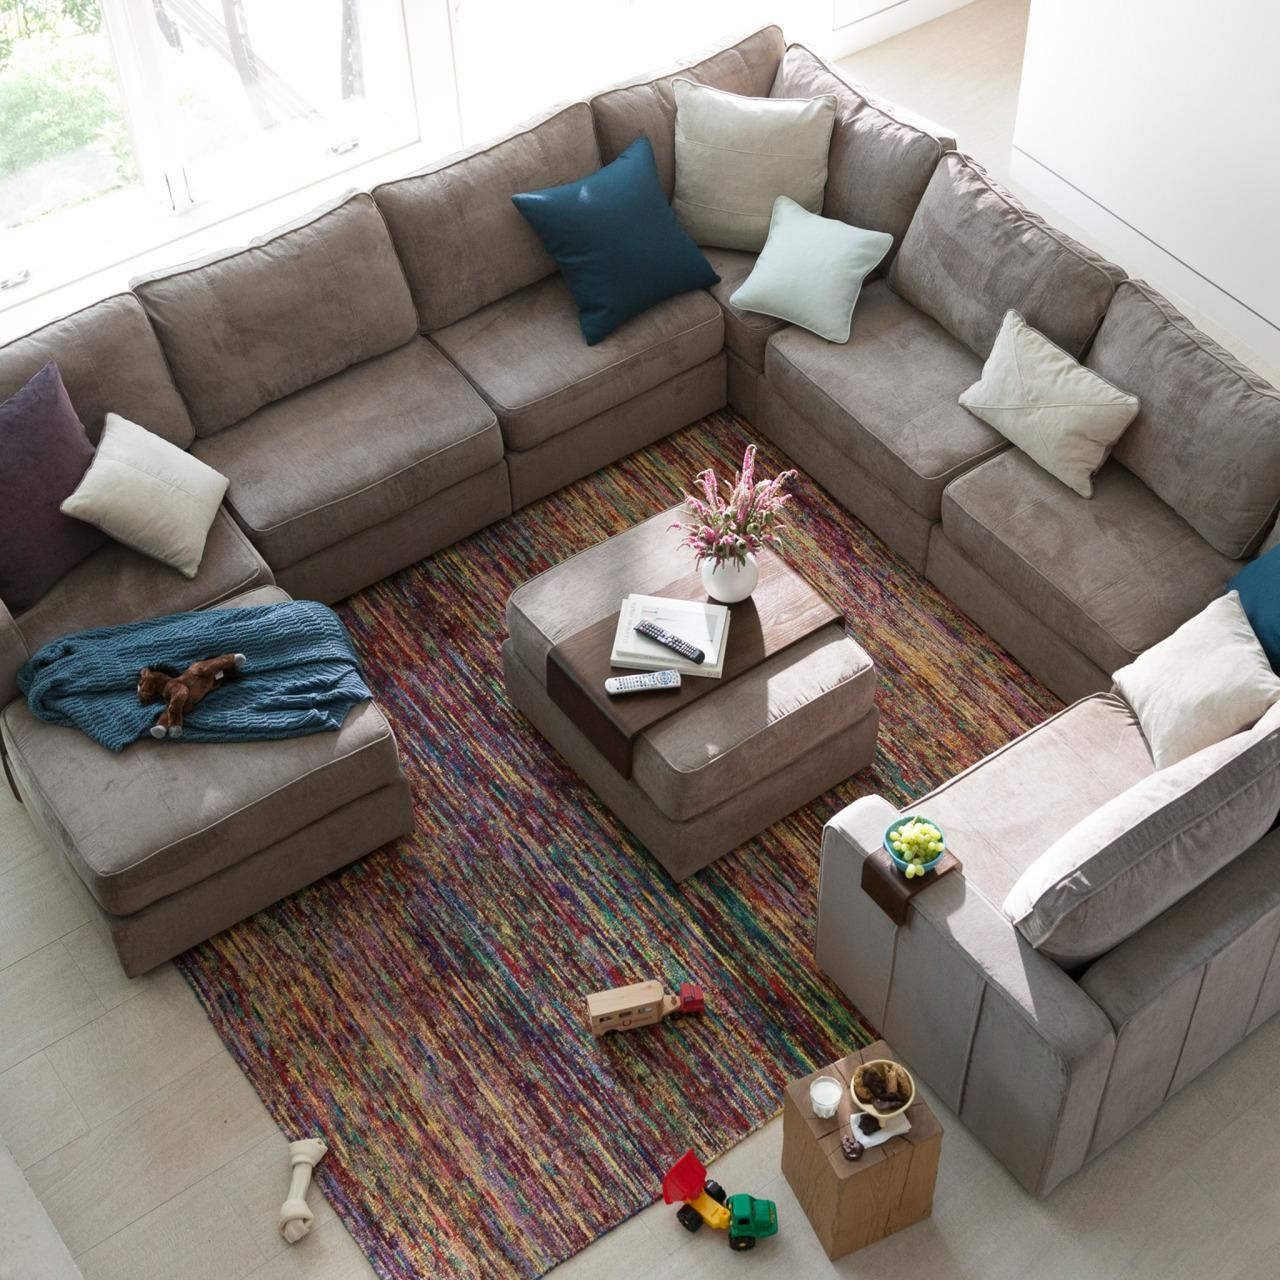 Lovesac — We Make Sactionals, The Most Adaptable Couch In The Intended For Lovesac Sofas (Image 10 of 20)